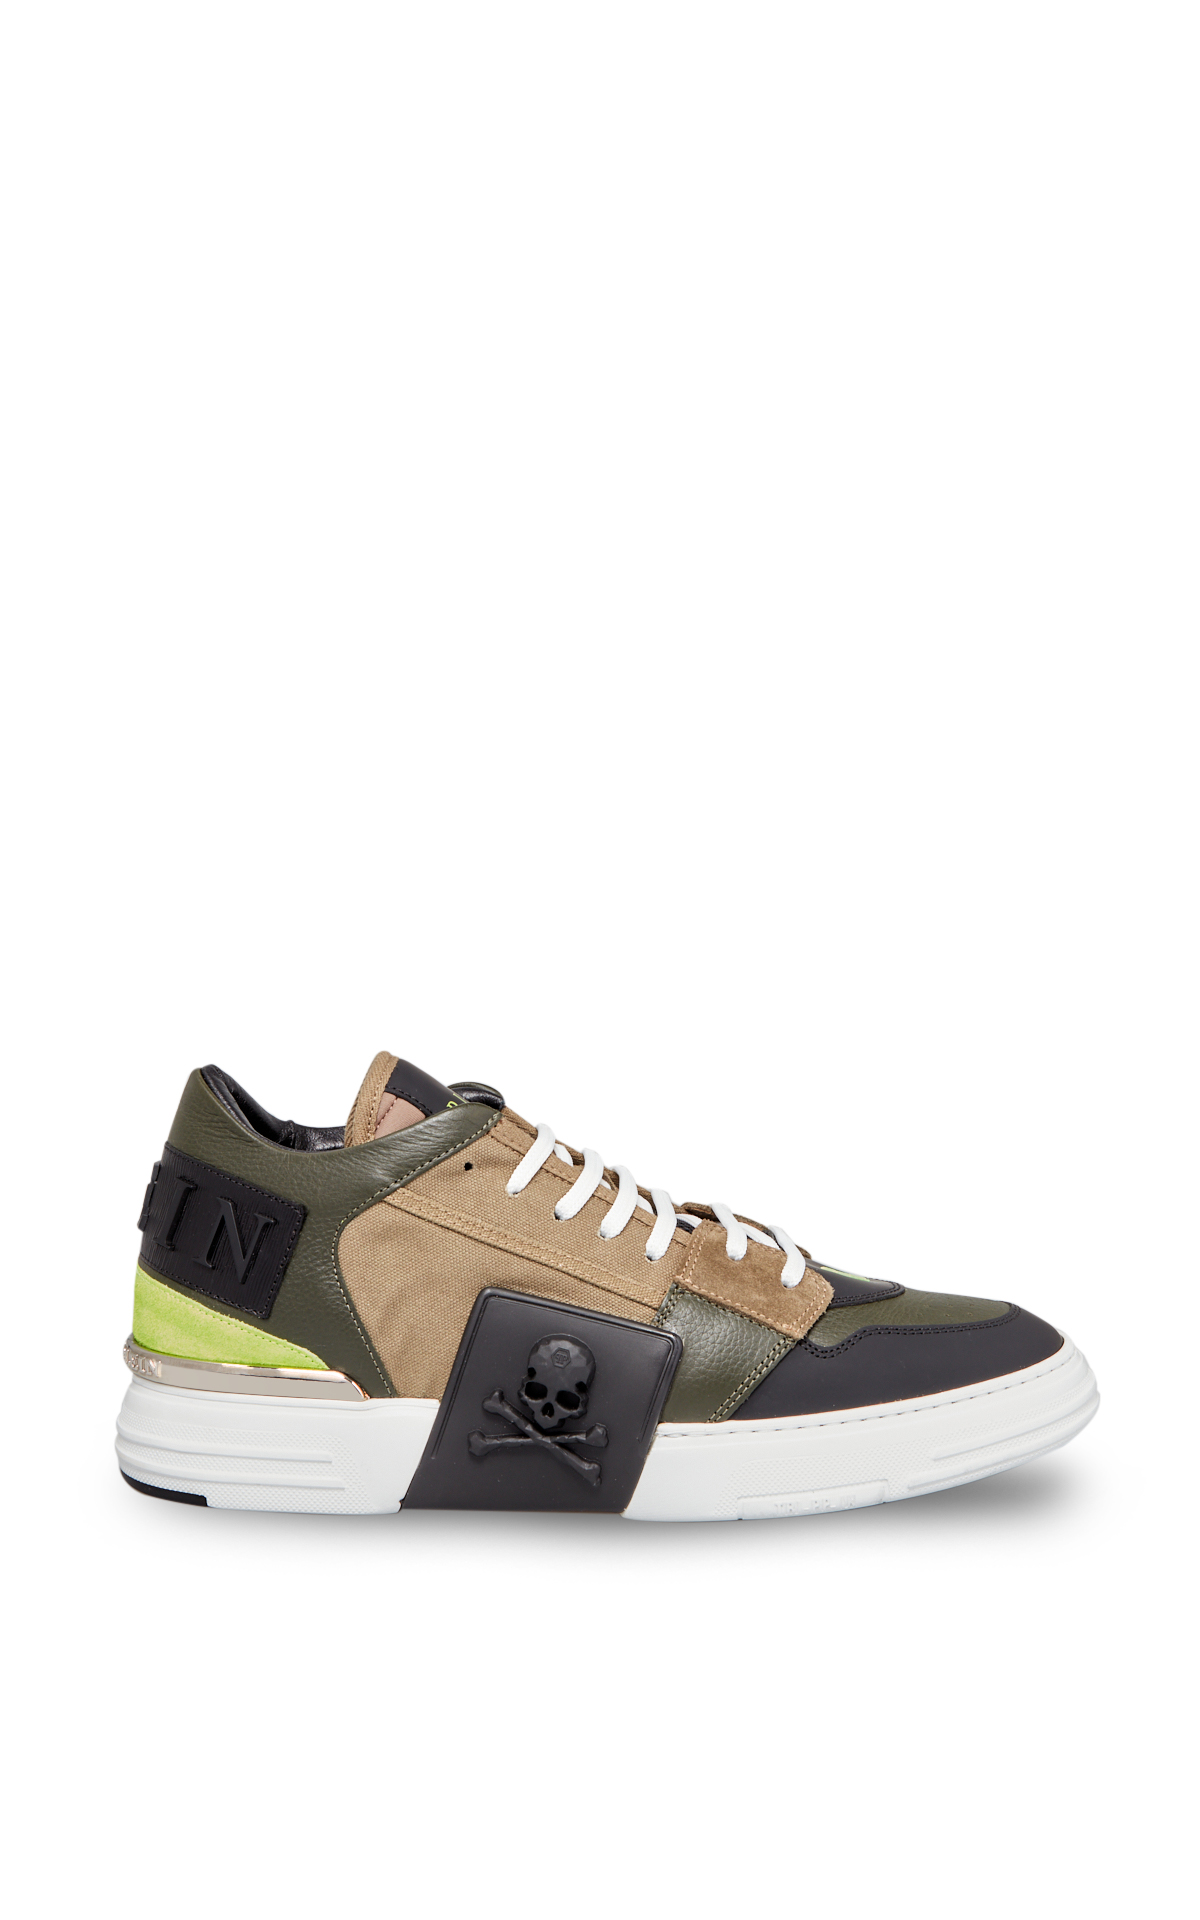 Philippe Plein Men's army sneakers*